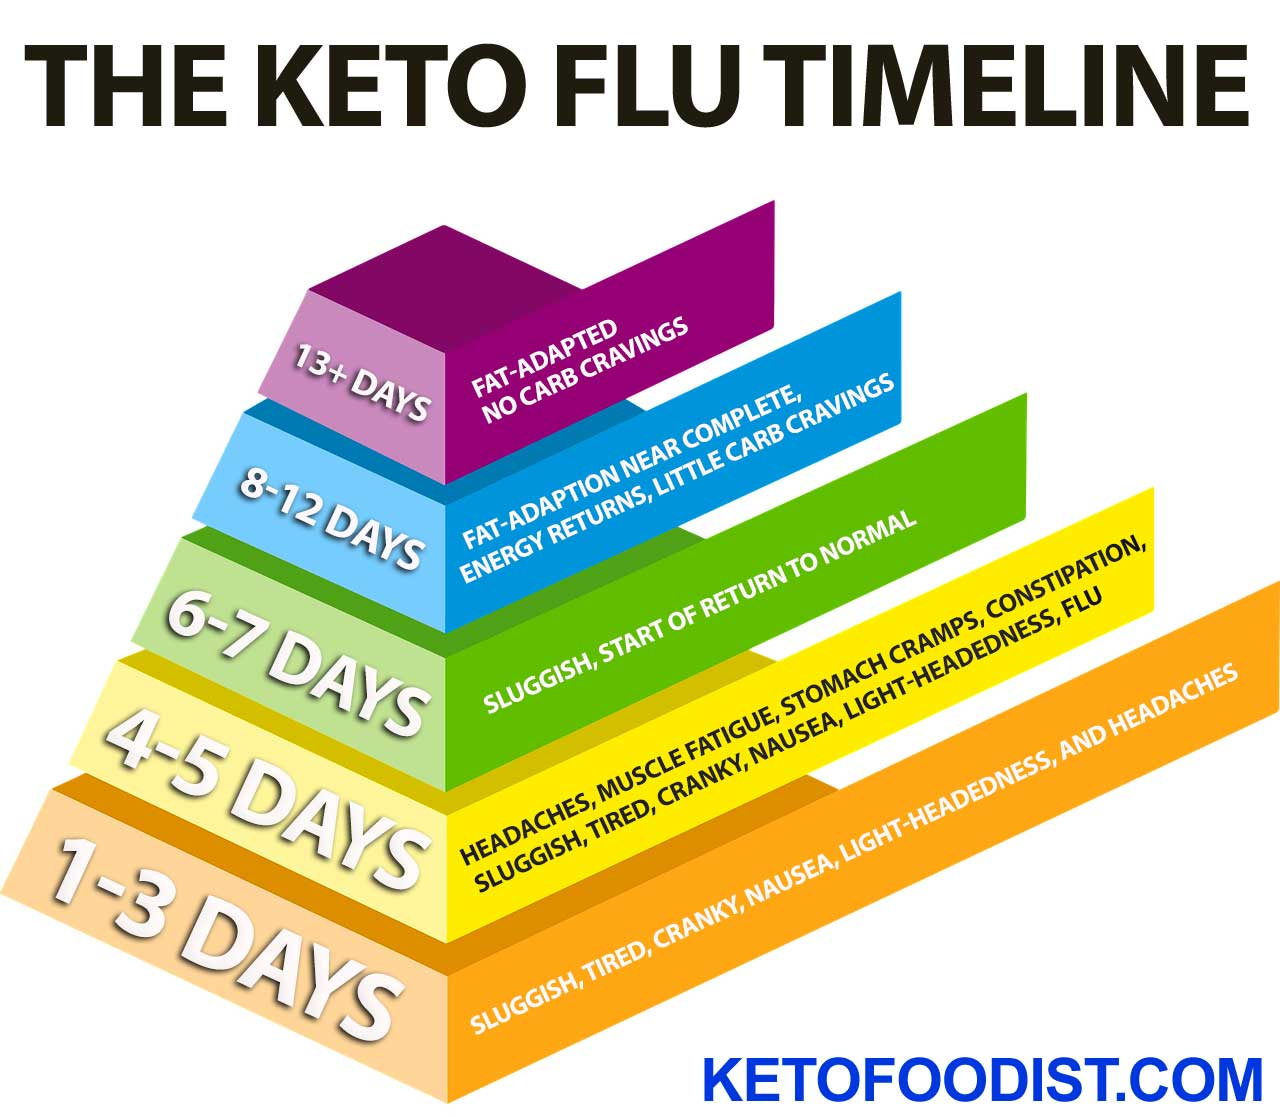 When Does the Keto Flu Kick In? How Long Does It Last?